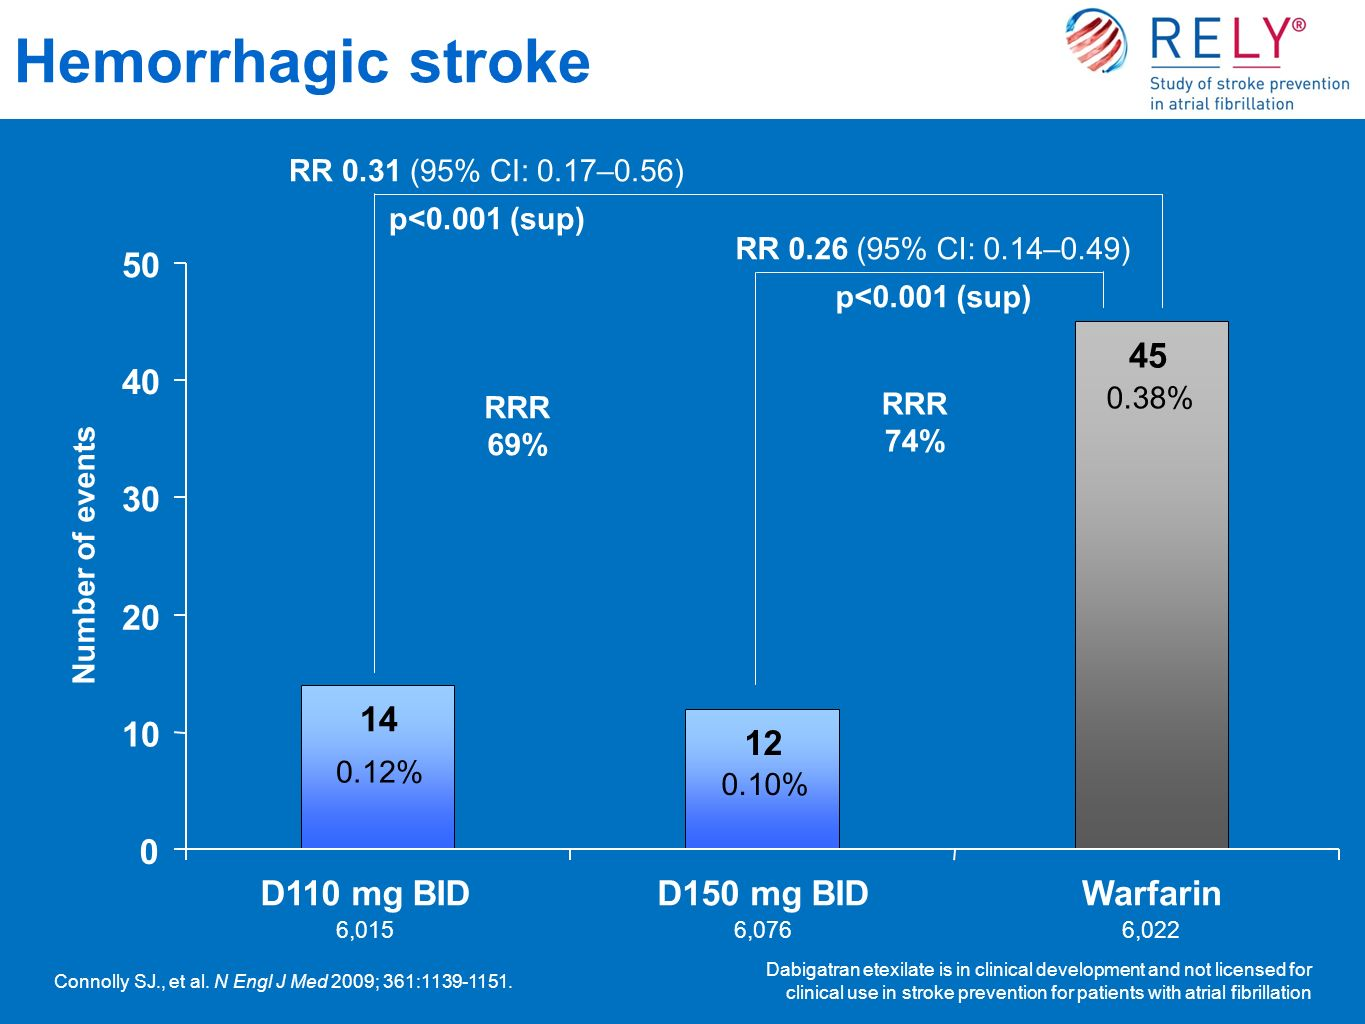 RR 0.26 (95% CI: 0.14–0.49) p<0.001 (sup) Hemorrhagic stroke Dabigatran etexilate is in clinical development and not licensed for clinical use in stroke prevention for patients with atrial fibrillation RR 0.31 (95% CI: 0.17–0.56) p<0.001 (sup) Number of events 6,0156,0766,022 14 12 45 0 10 20 30 40 50 D110 mg BIDD150 mg BIDWarfarin 0.10% 0.38% RRR 69% RRR 74% 0.12% Connolly SJ., et al.